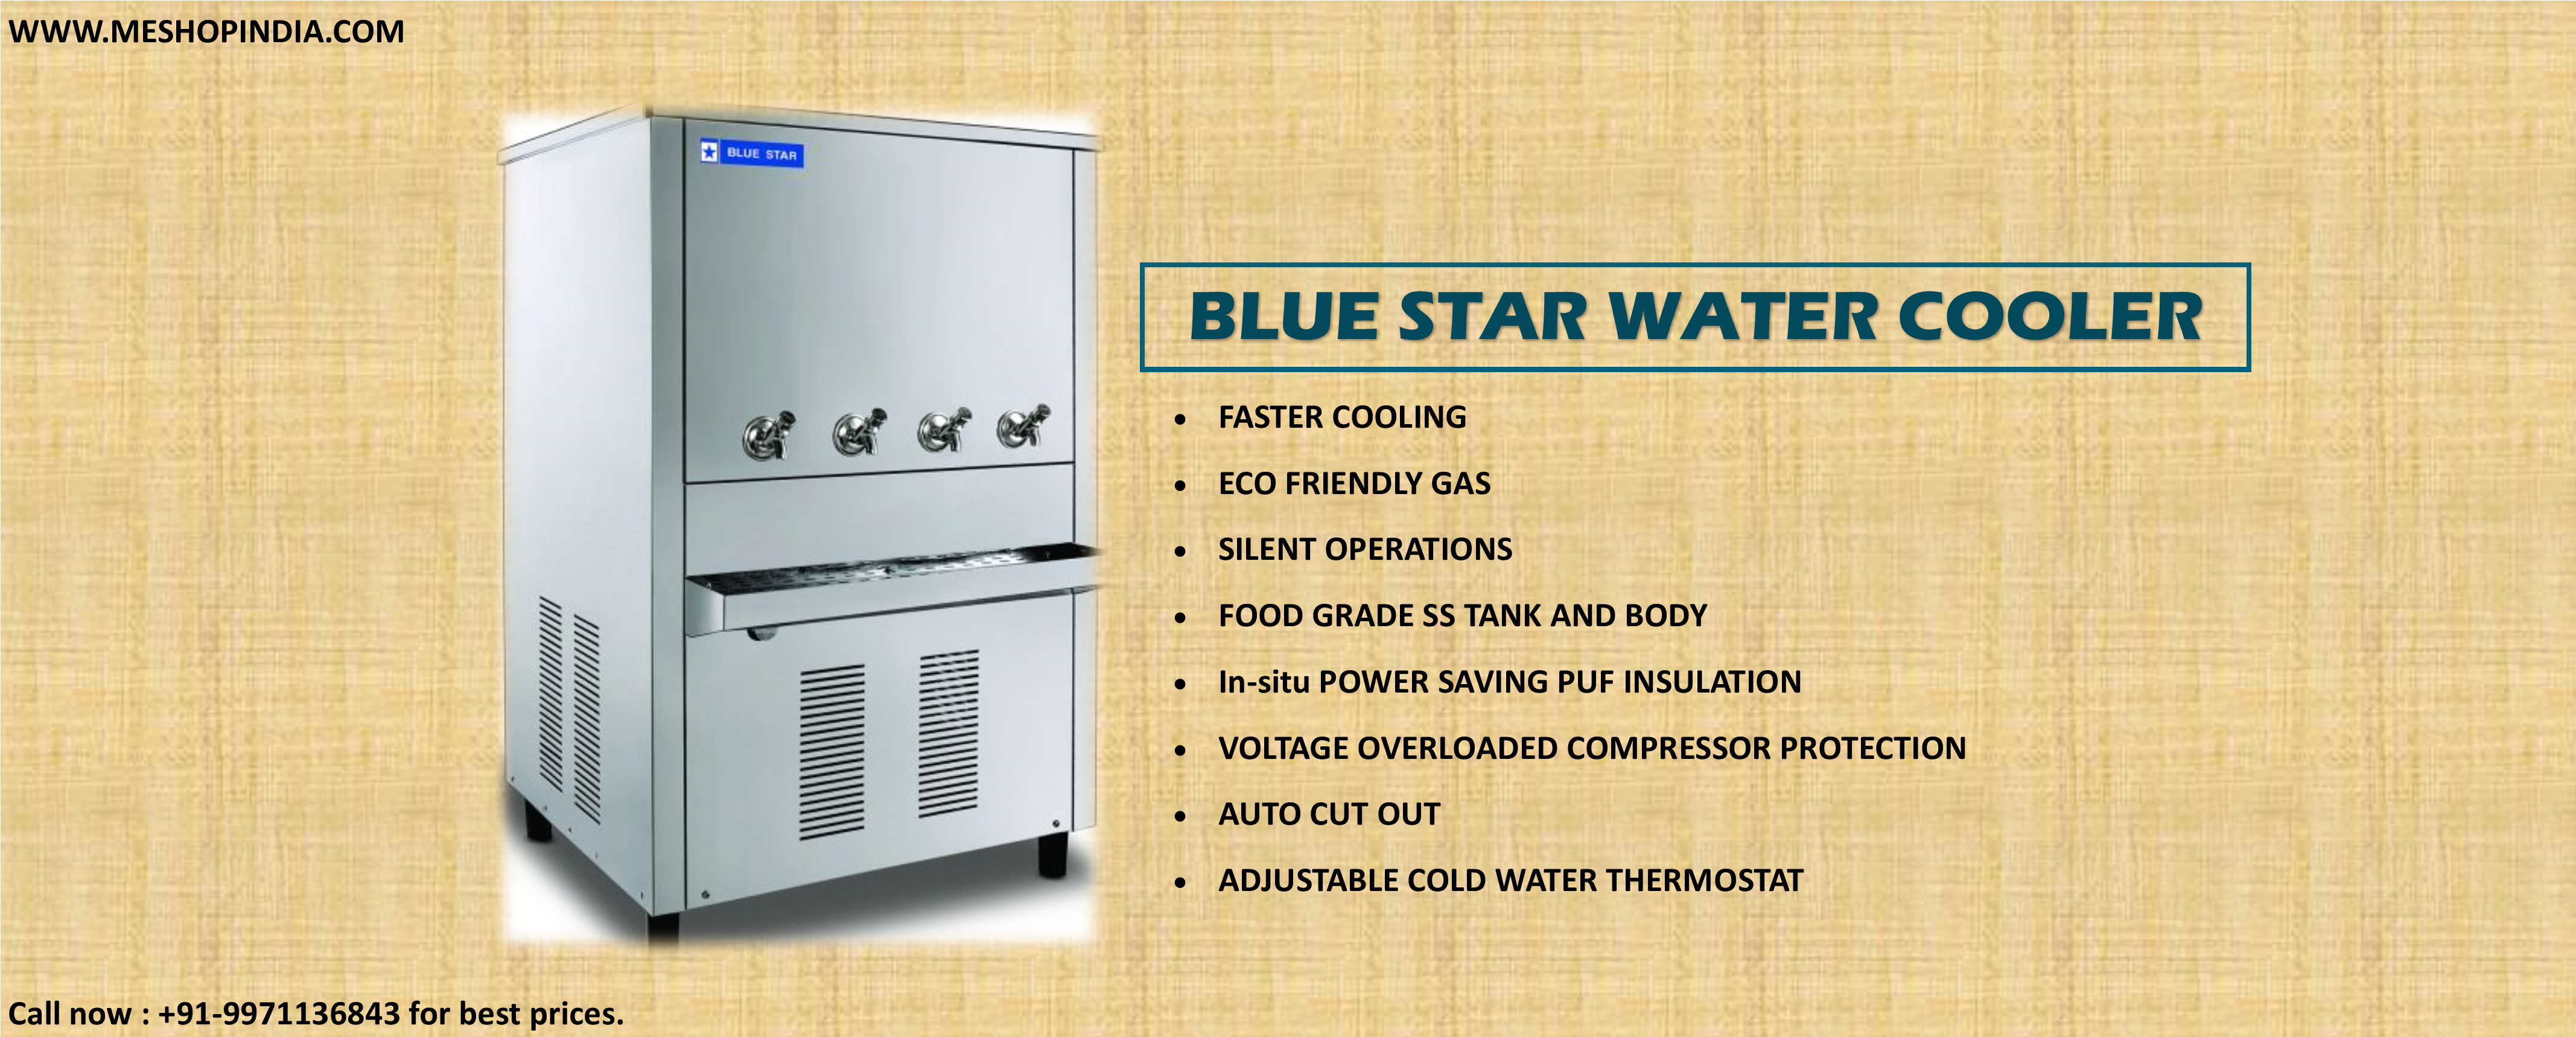 Top Water Cooler manufacture in India.